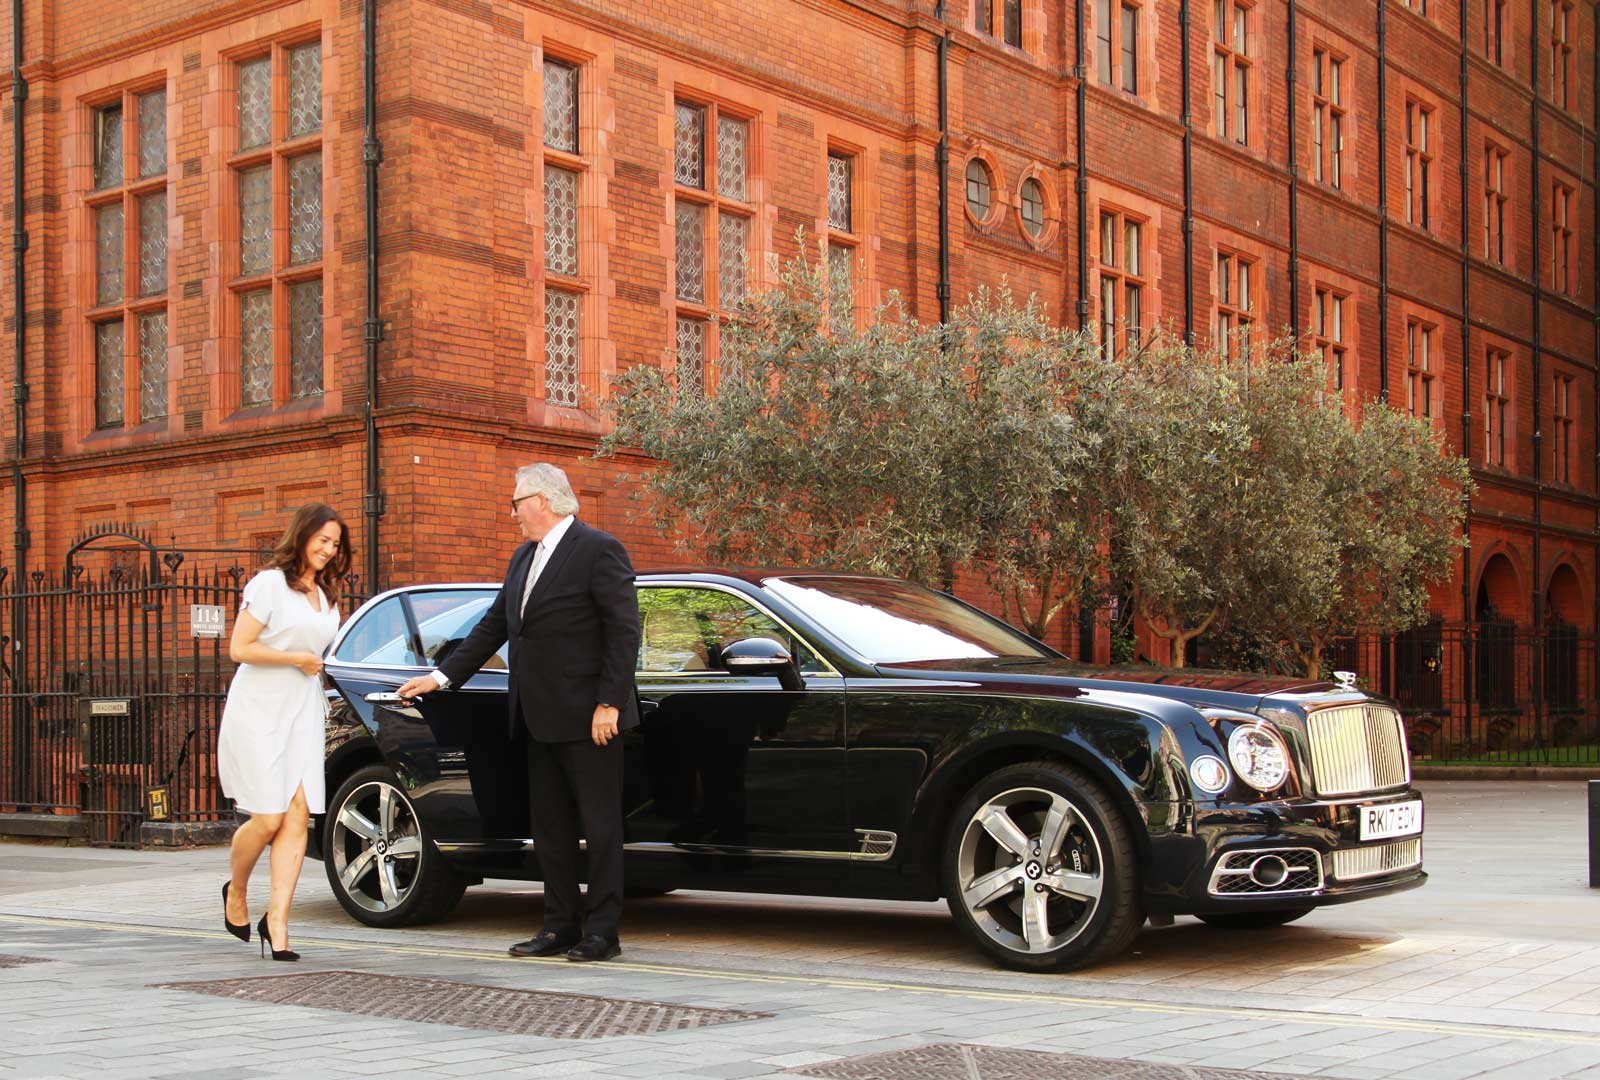 Chauffeurs Available Have an effect